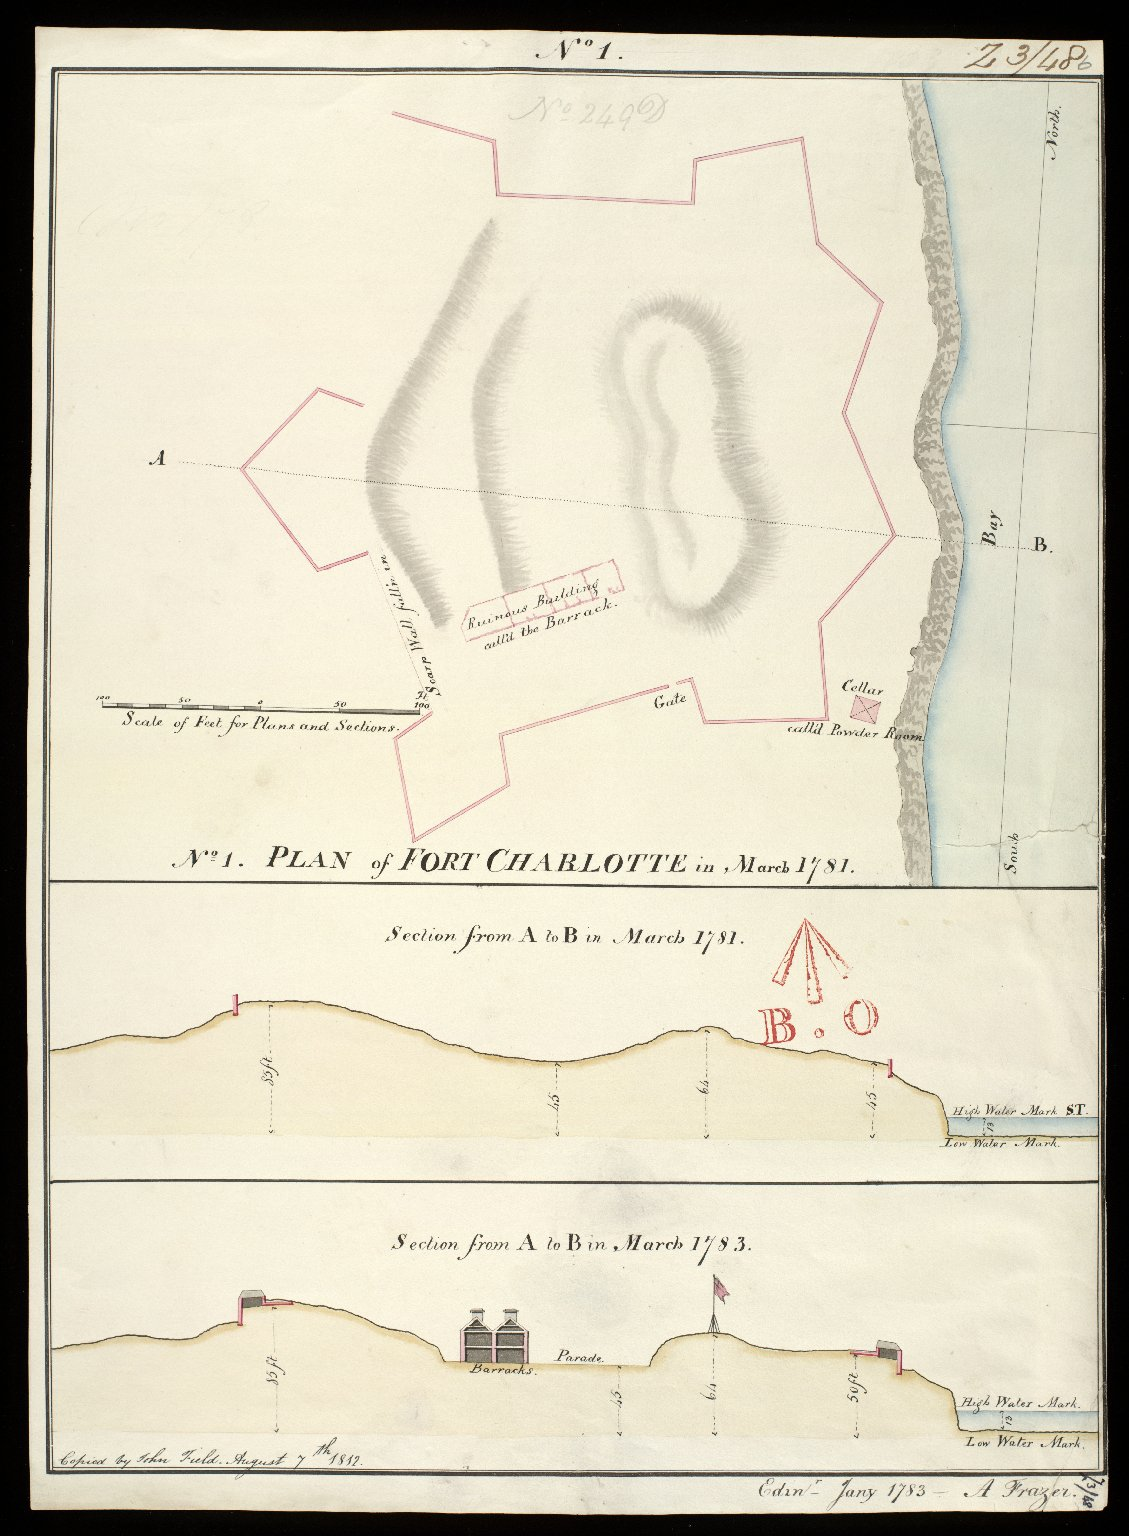 Plan of Fort Charlotte in March 1781 No. 1 : section from A to B in March 1781; section from A to B January 1783 [copy] [1 of 1]